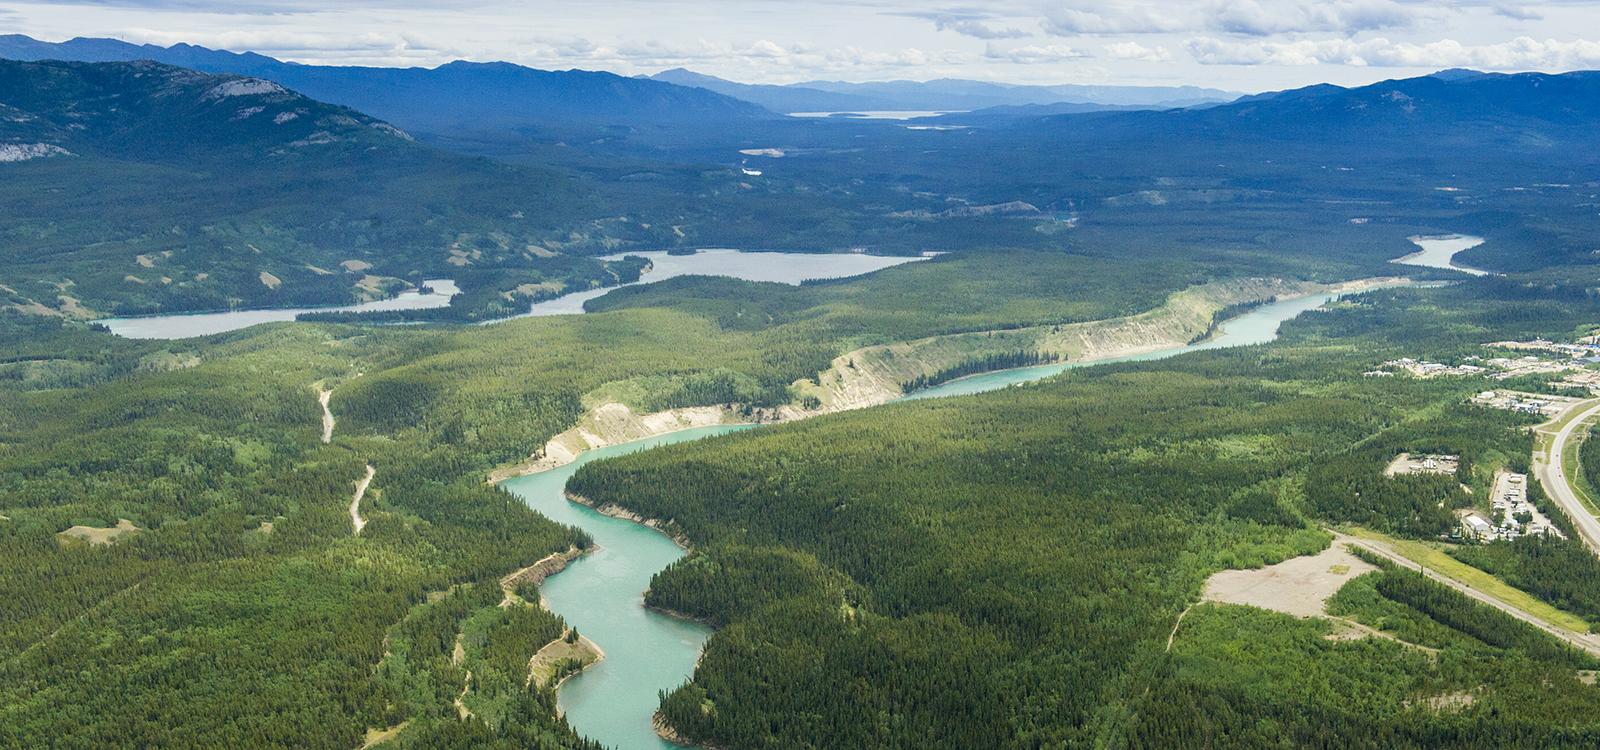 Aerial of Yukon River near Whitehorse